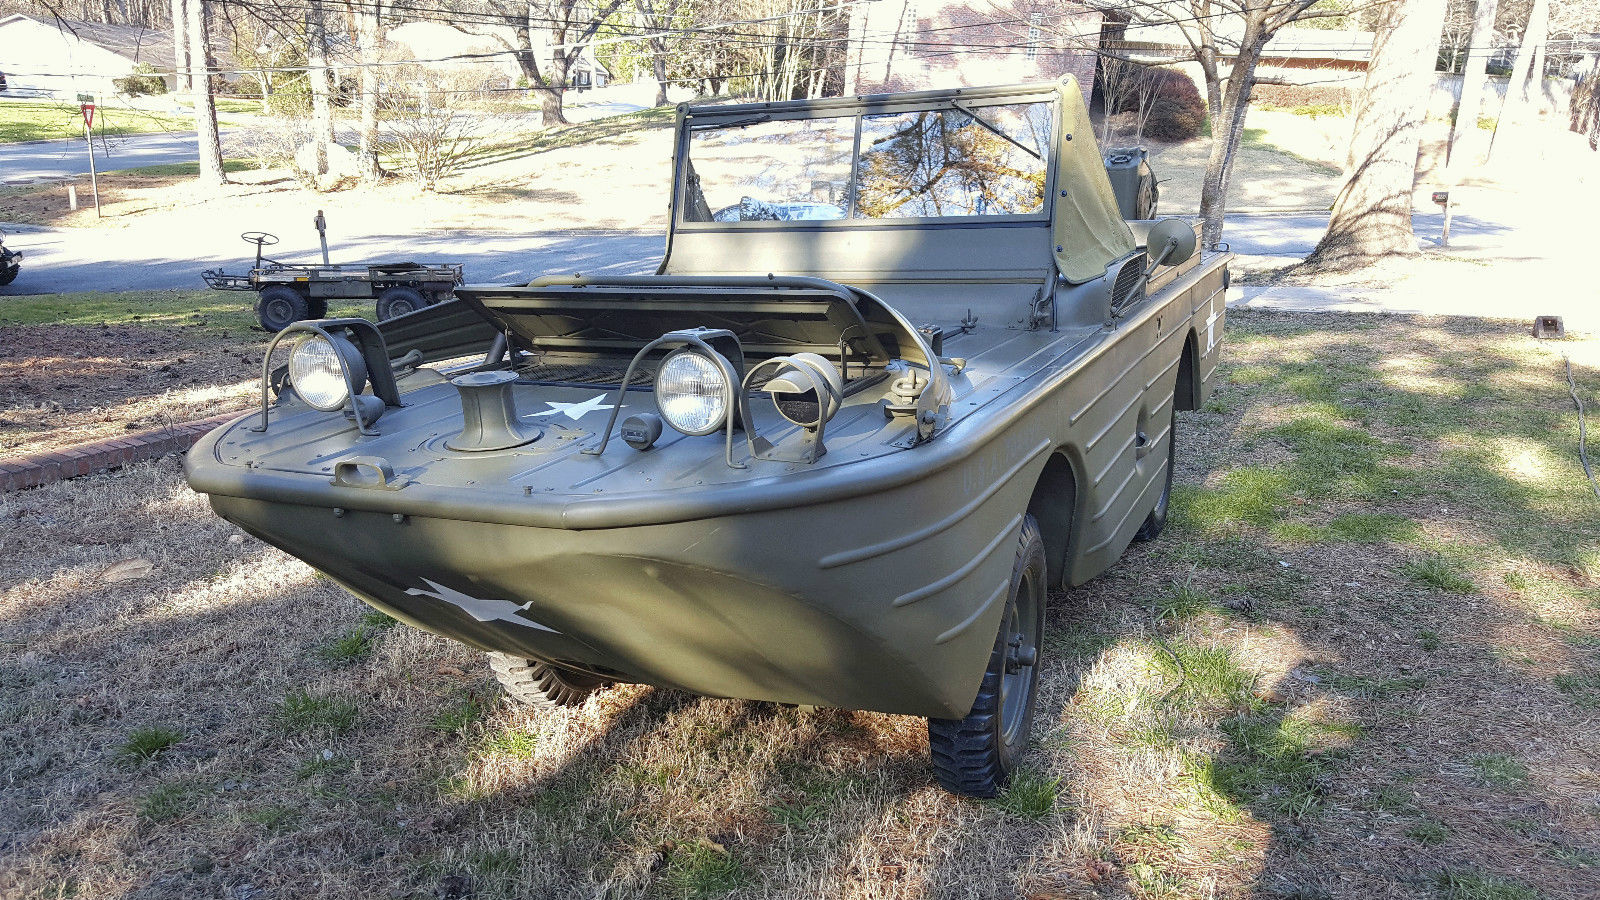 1942 Willys Jeep For Sale >> 1942 Ford GPA Restored Swimmer Amphibious Jeep for sale